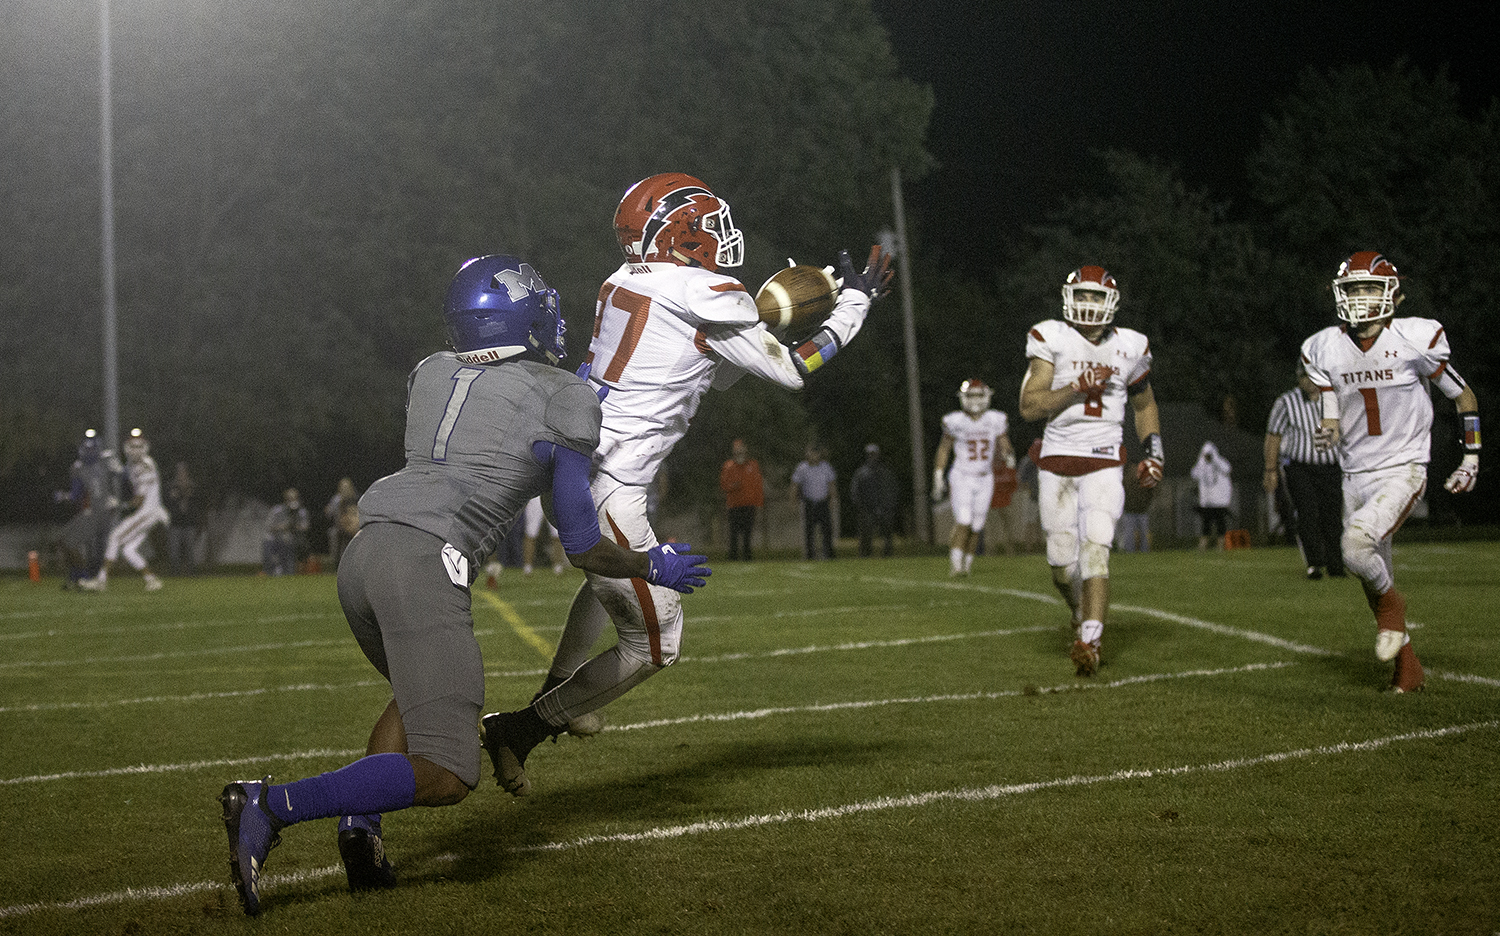 Glenwood's Austin Bush picks off a two point conversion pass in front of Decatur MacArthur's AJ Lawson at Decatur MacArthur High School Friday, Sept. 28, 2018. [Ted Schurter/The State Journal-Register]